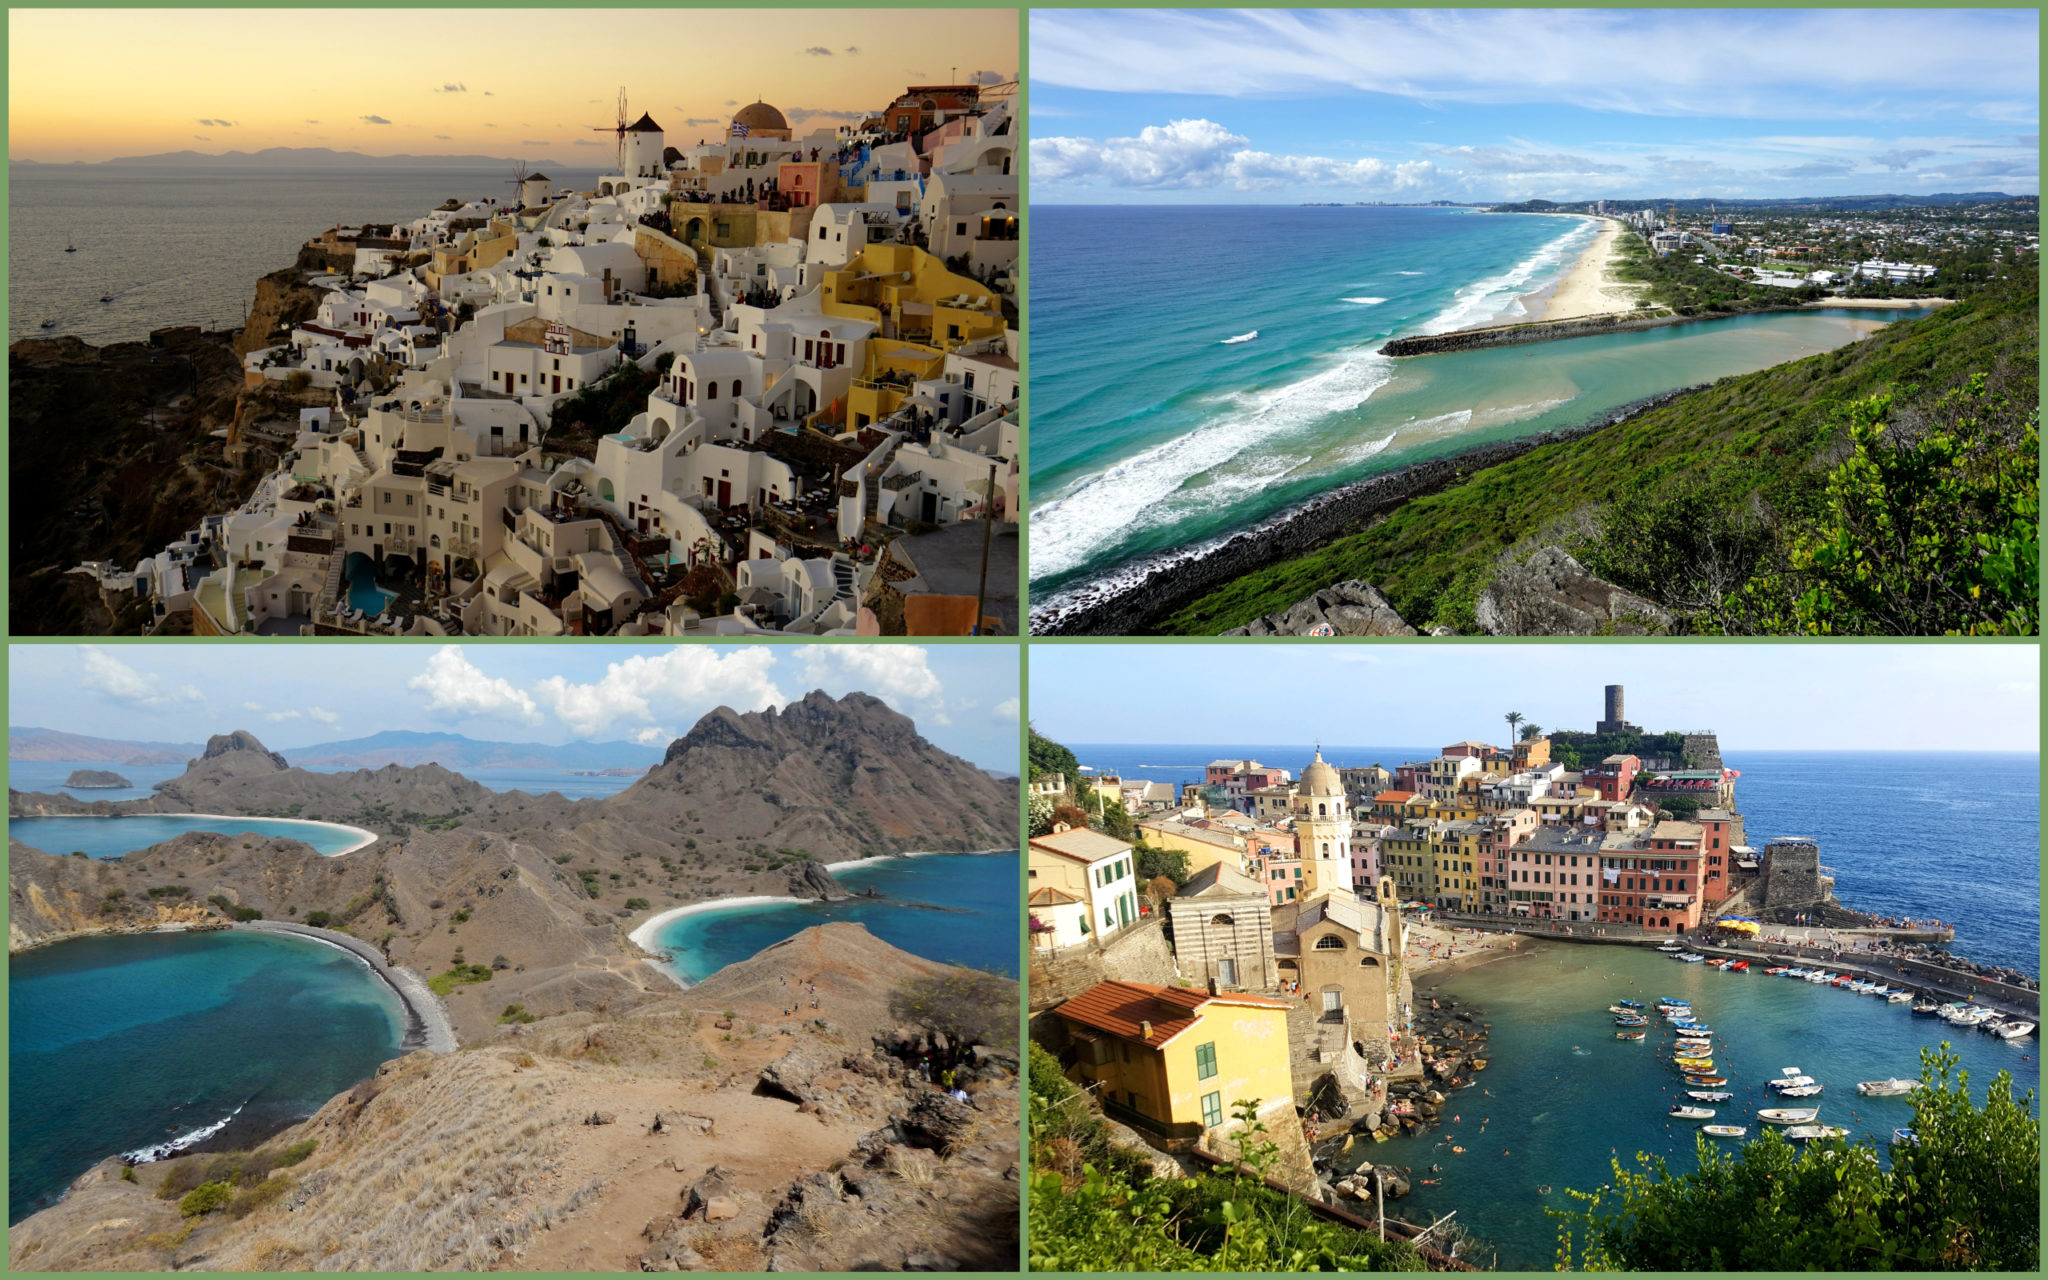 Some of my favourite destination include Greece, Australia, Indonesia and Italy.